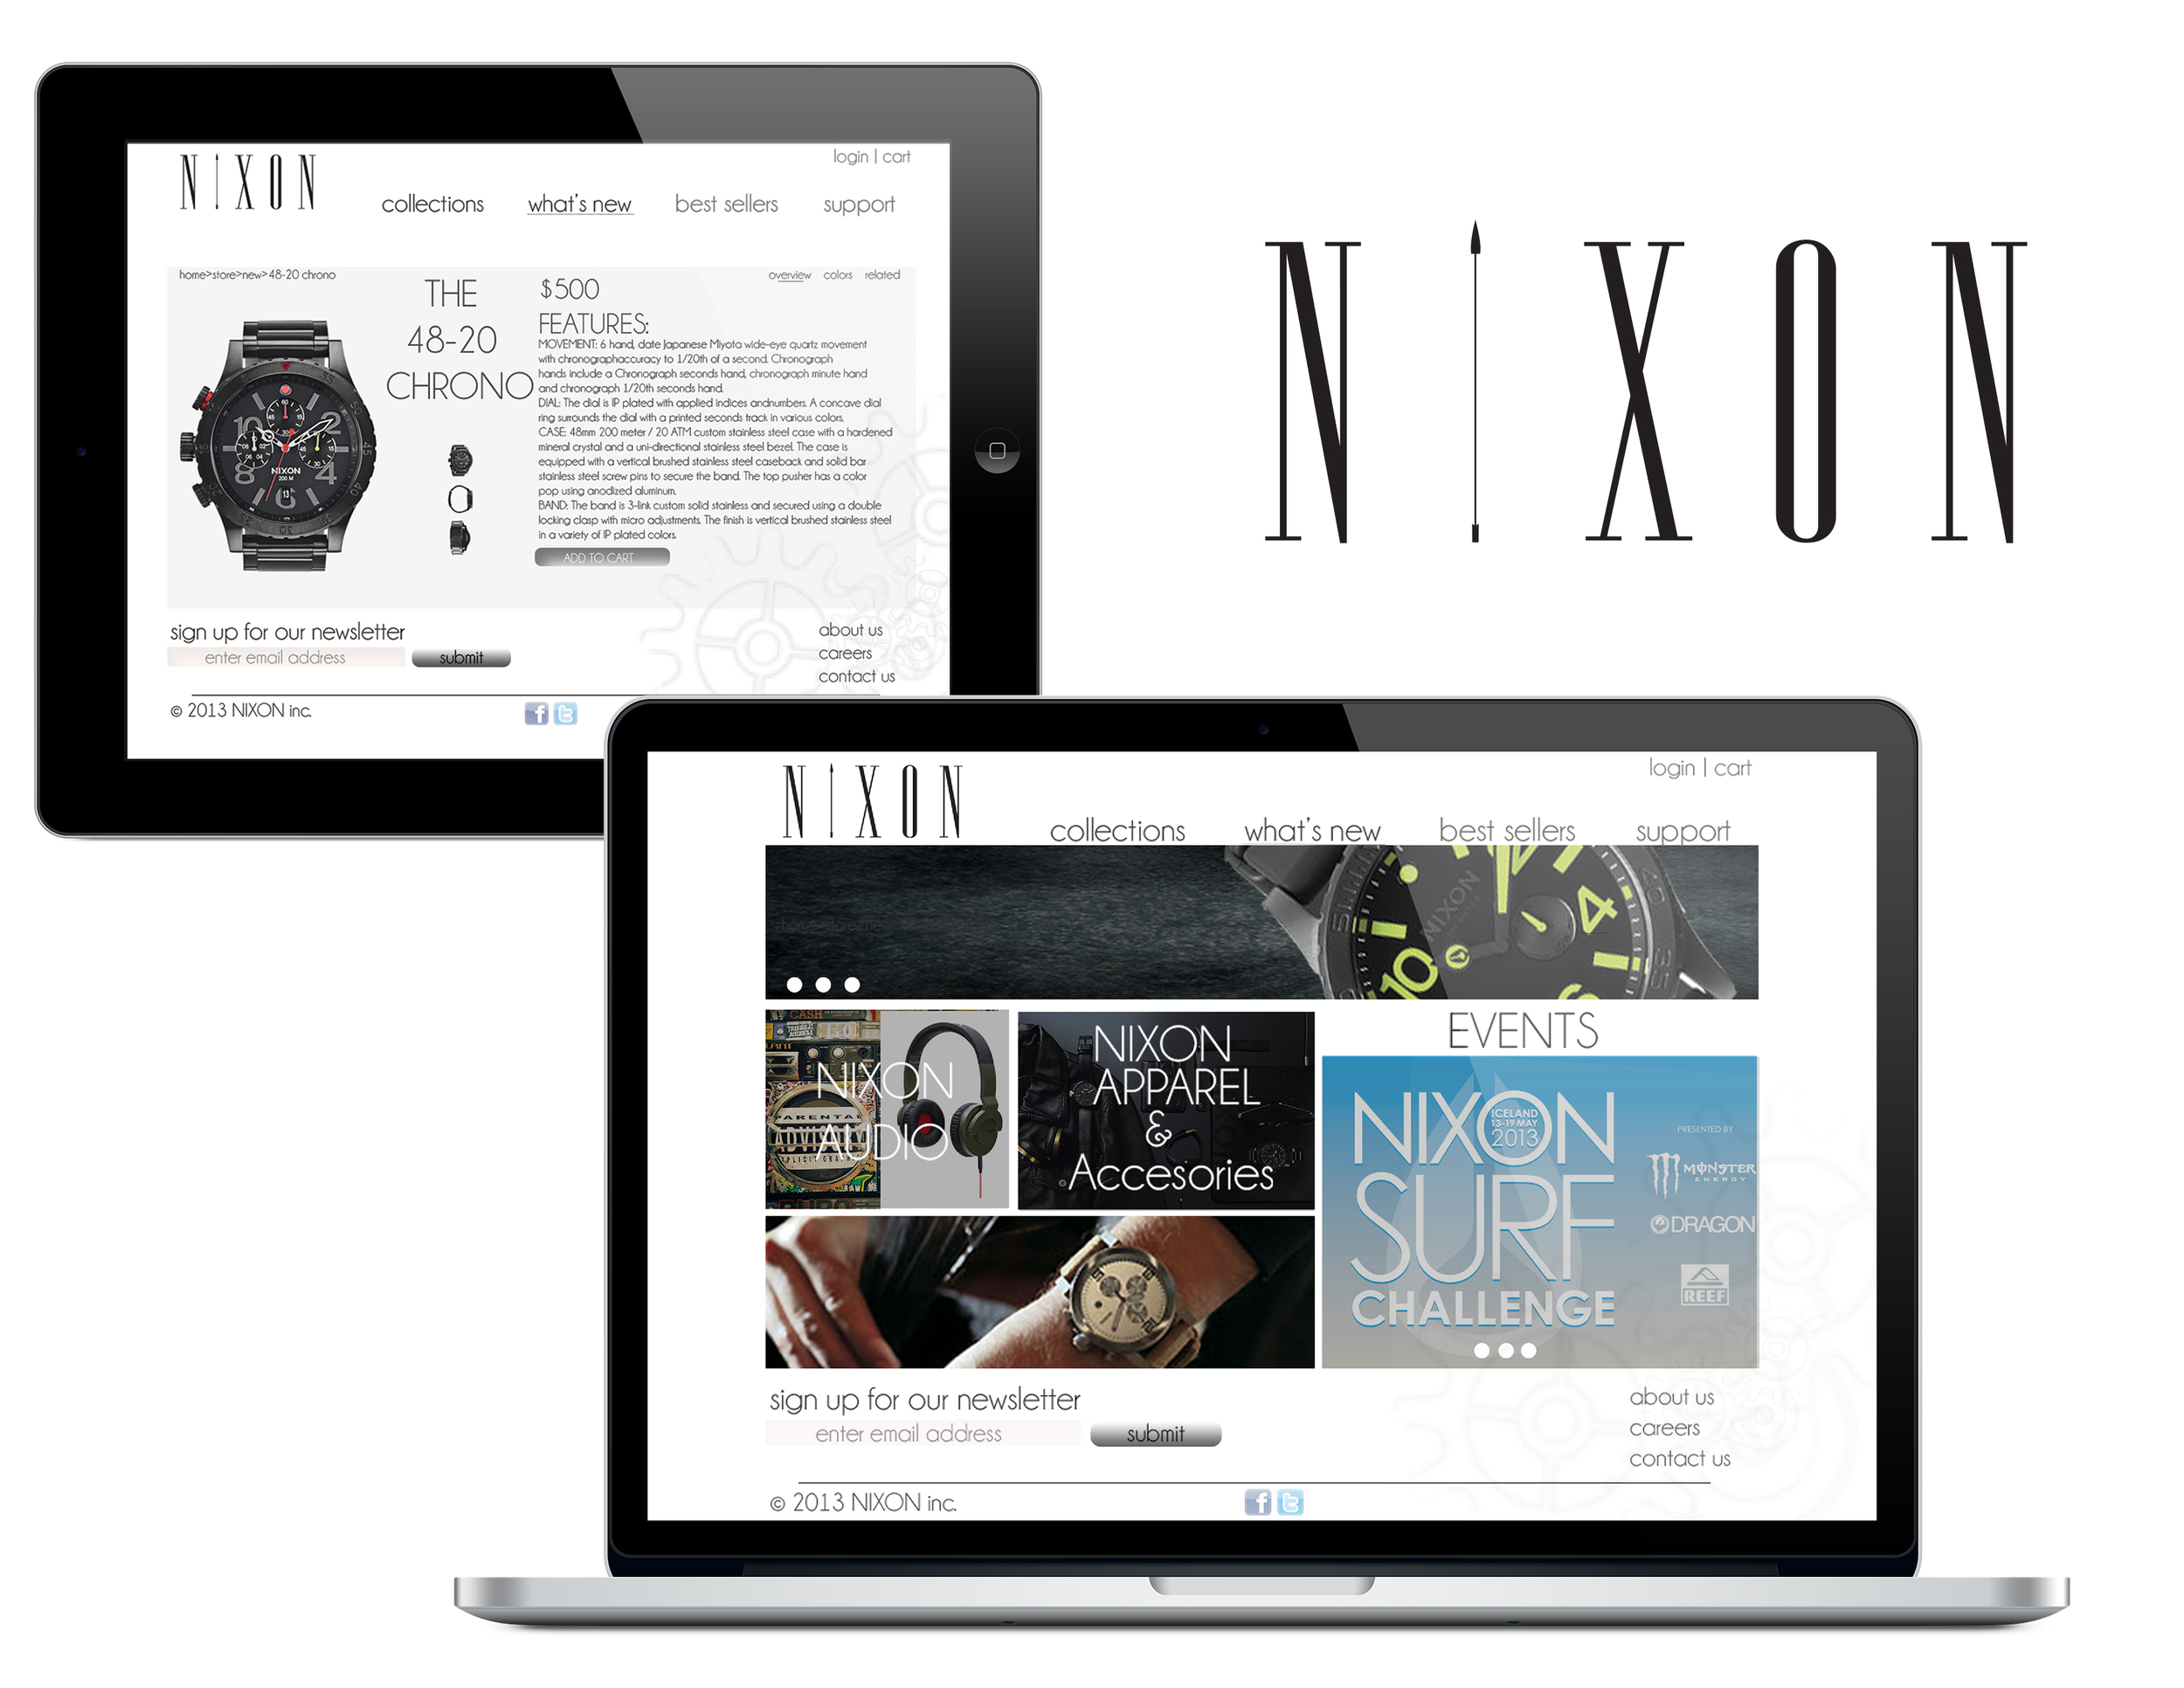 Nixon website/logo re-design.